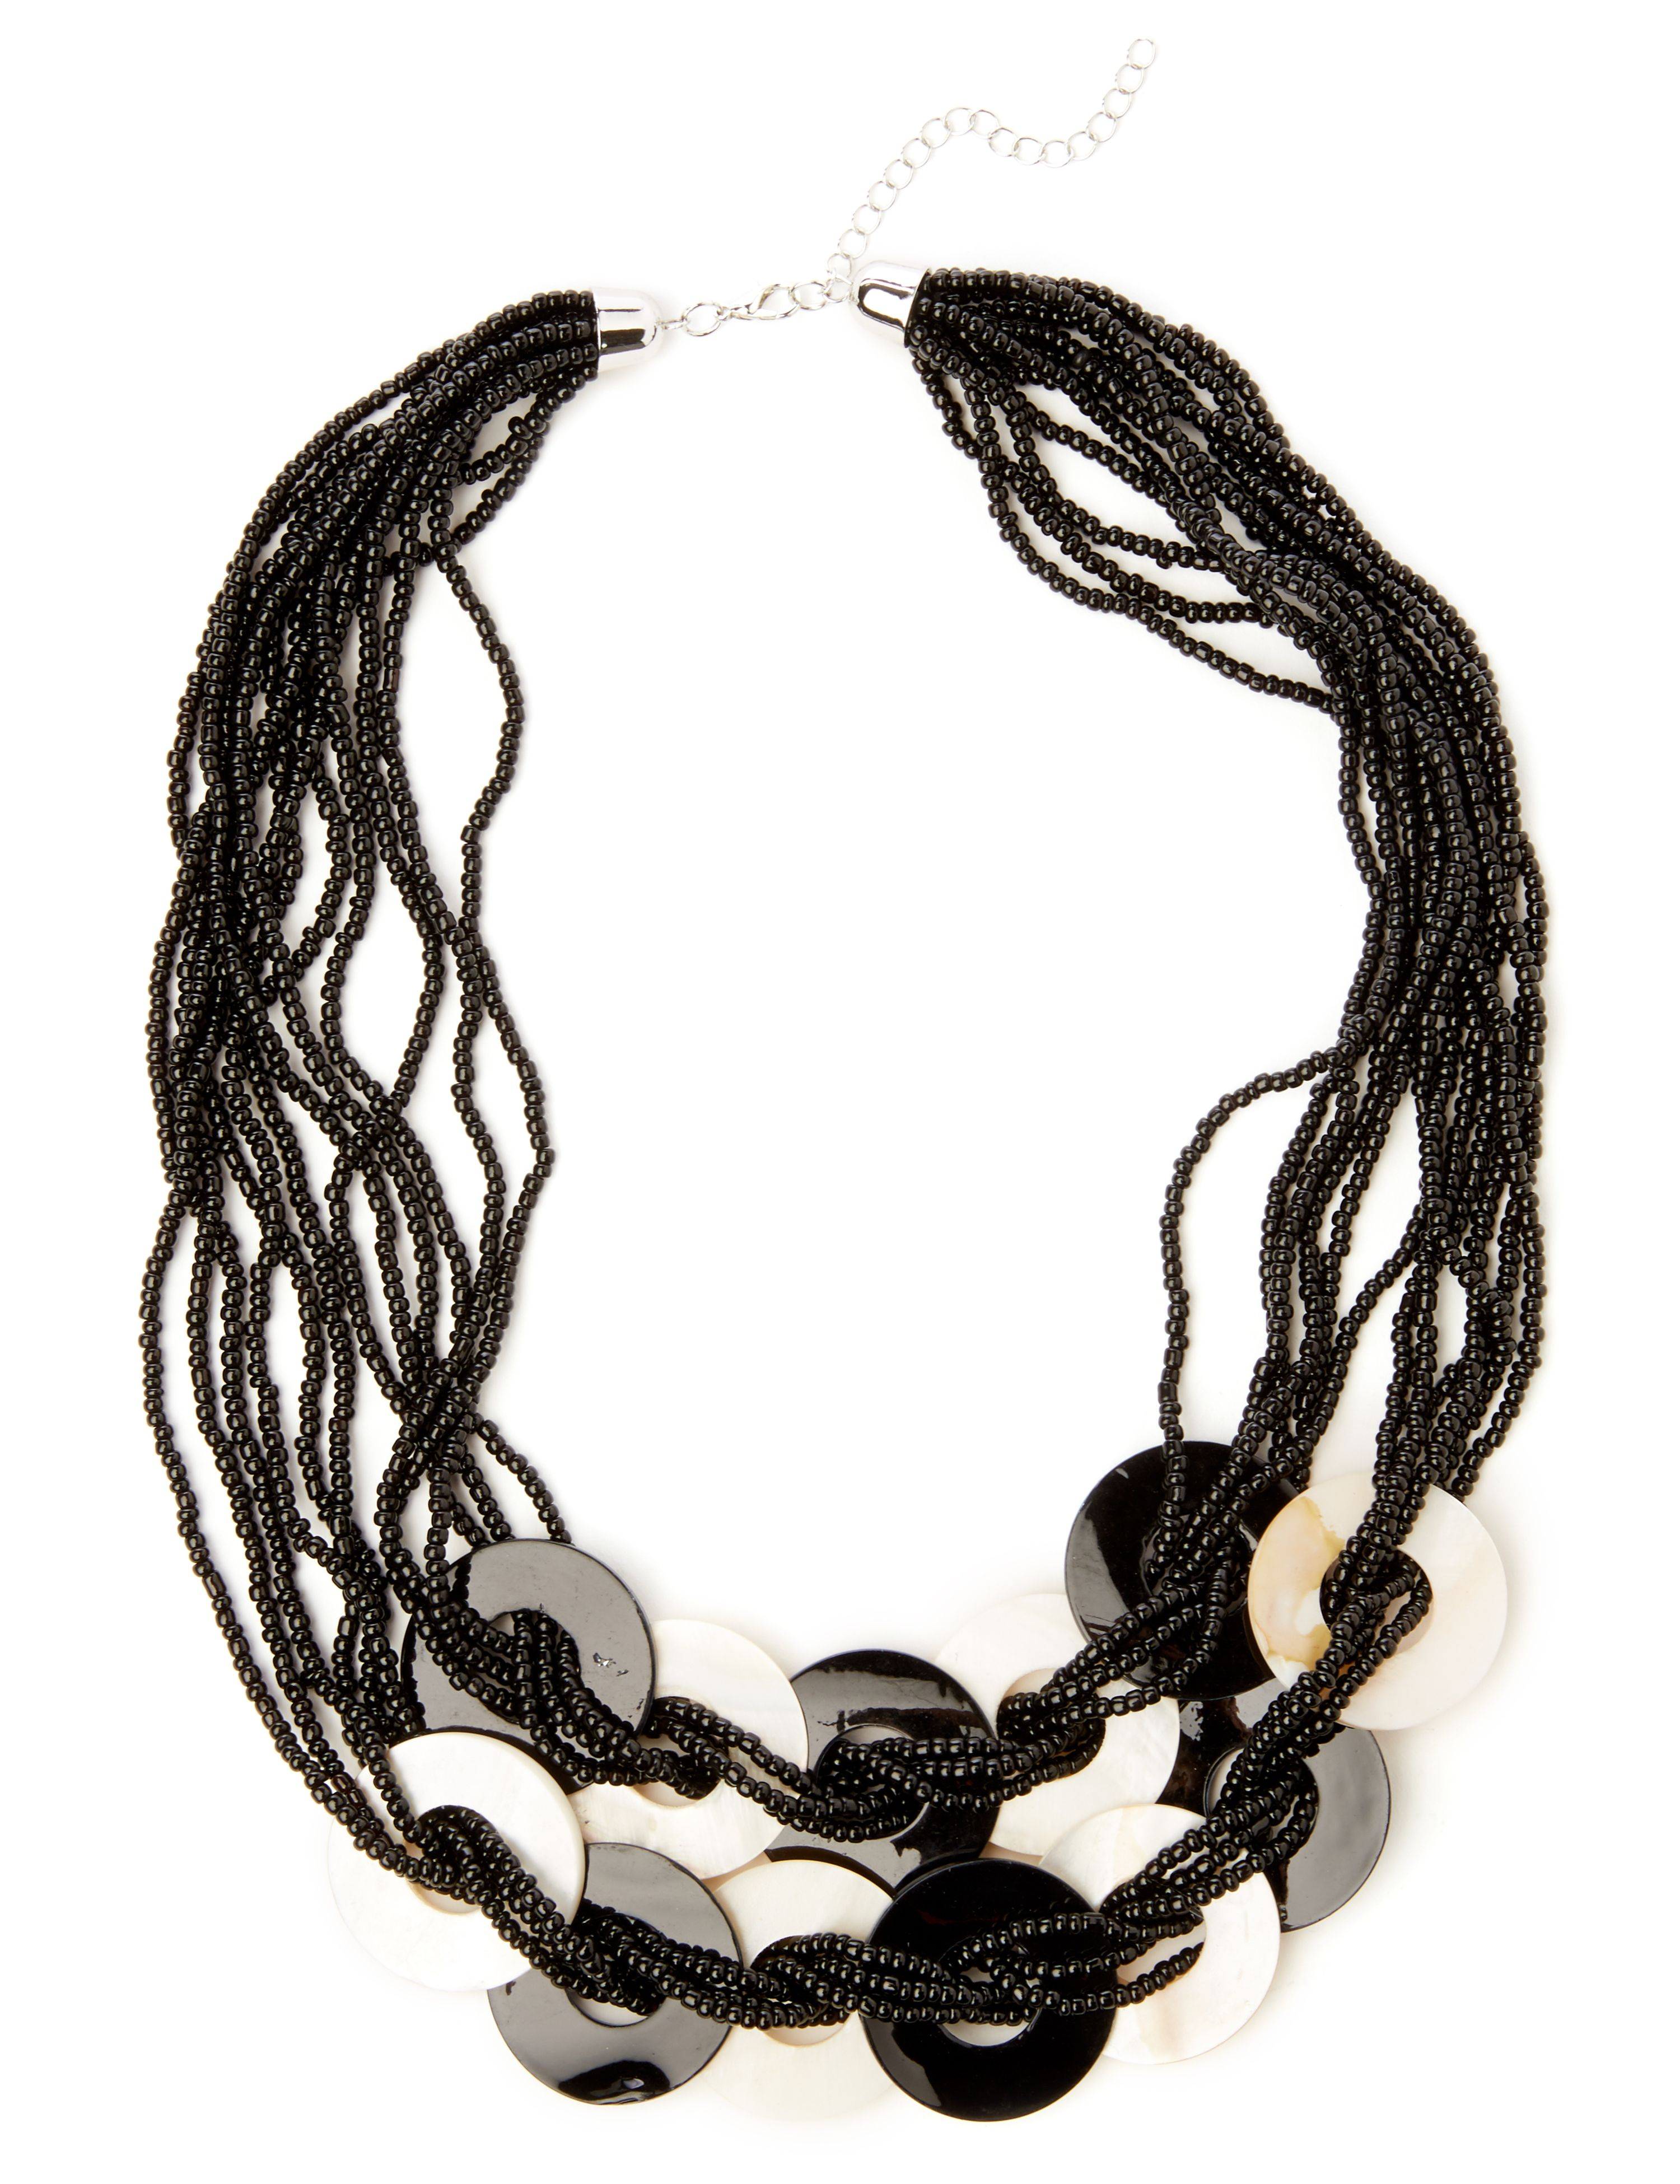 Striking Statement Necklace NH Short seed bead & rings NK KT072 MP-300099192